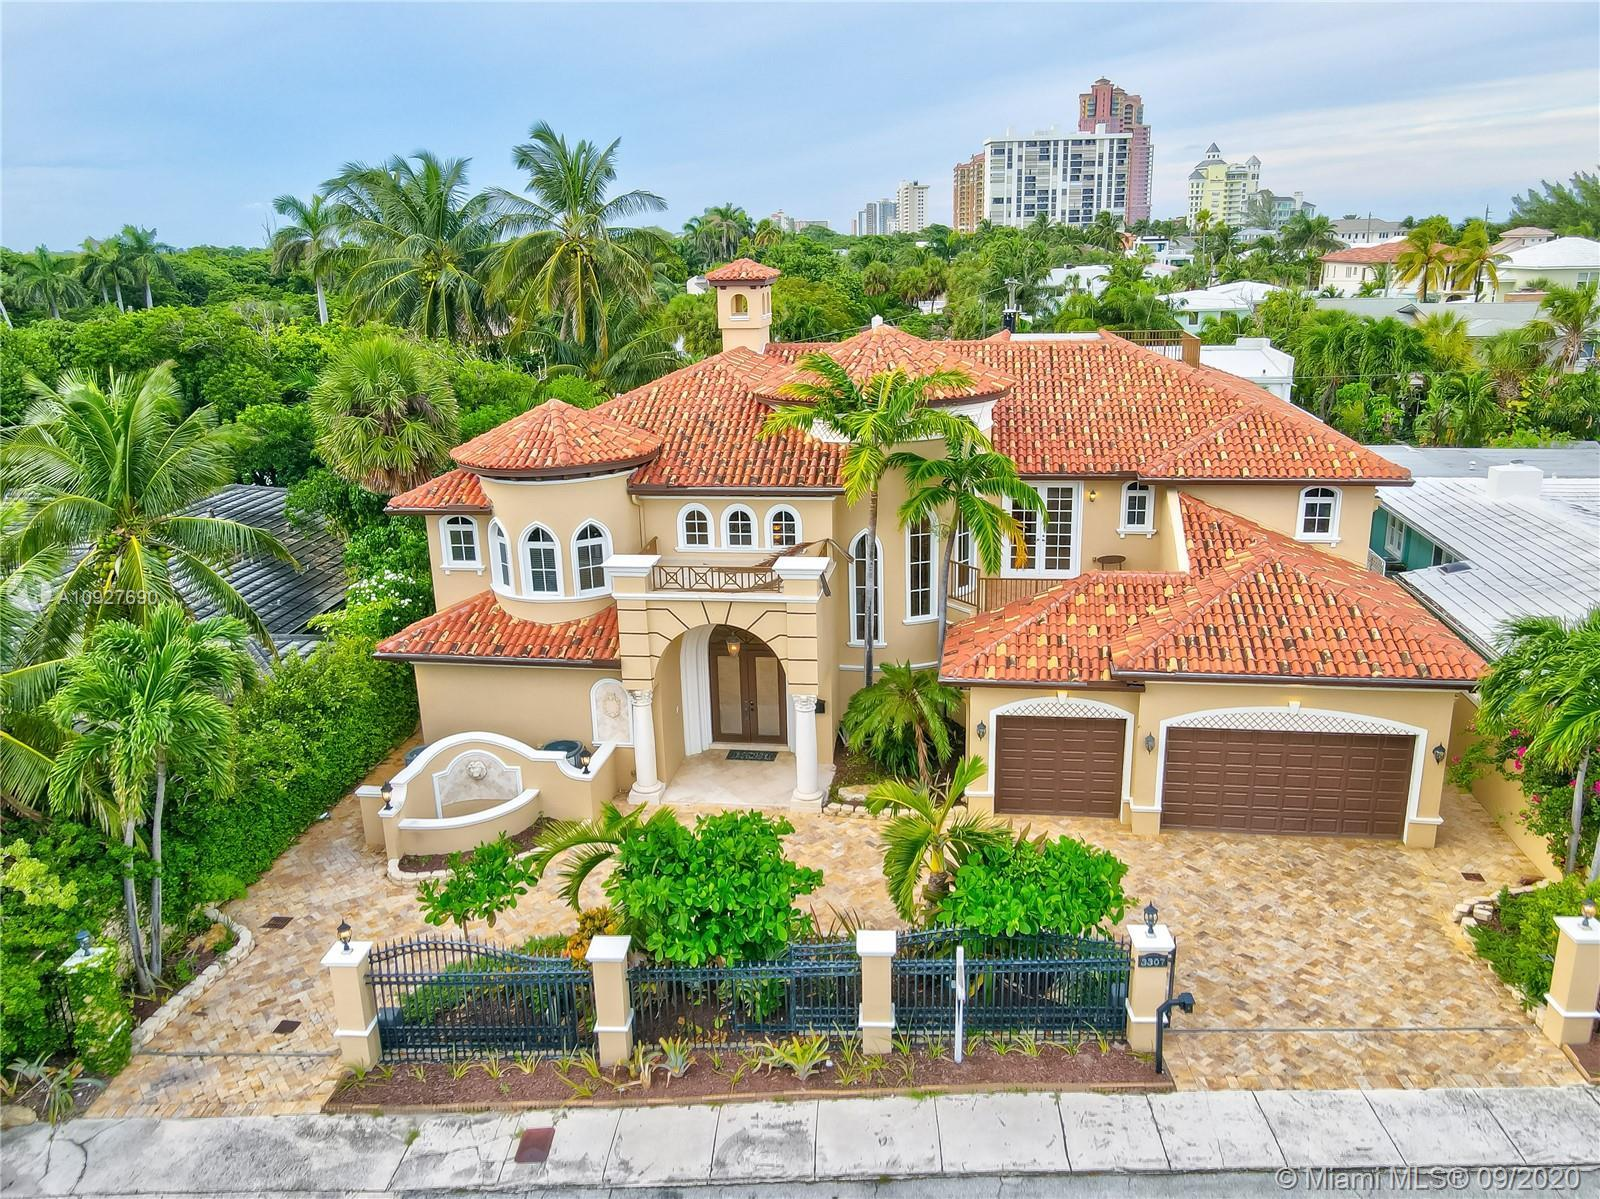 Just steps away from the beach, and completely secured. This one of a kind 6,500 sq ft Mediterranean